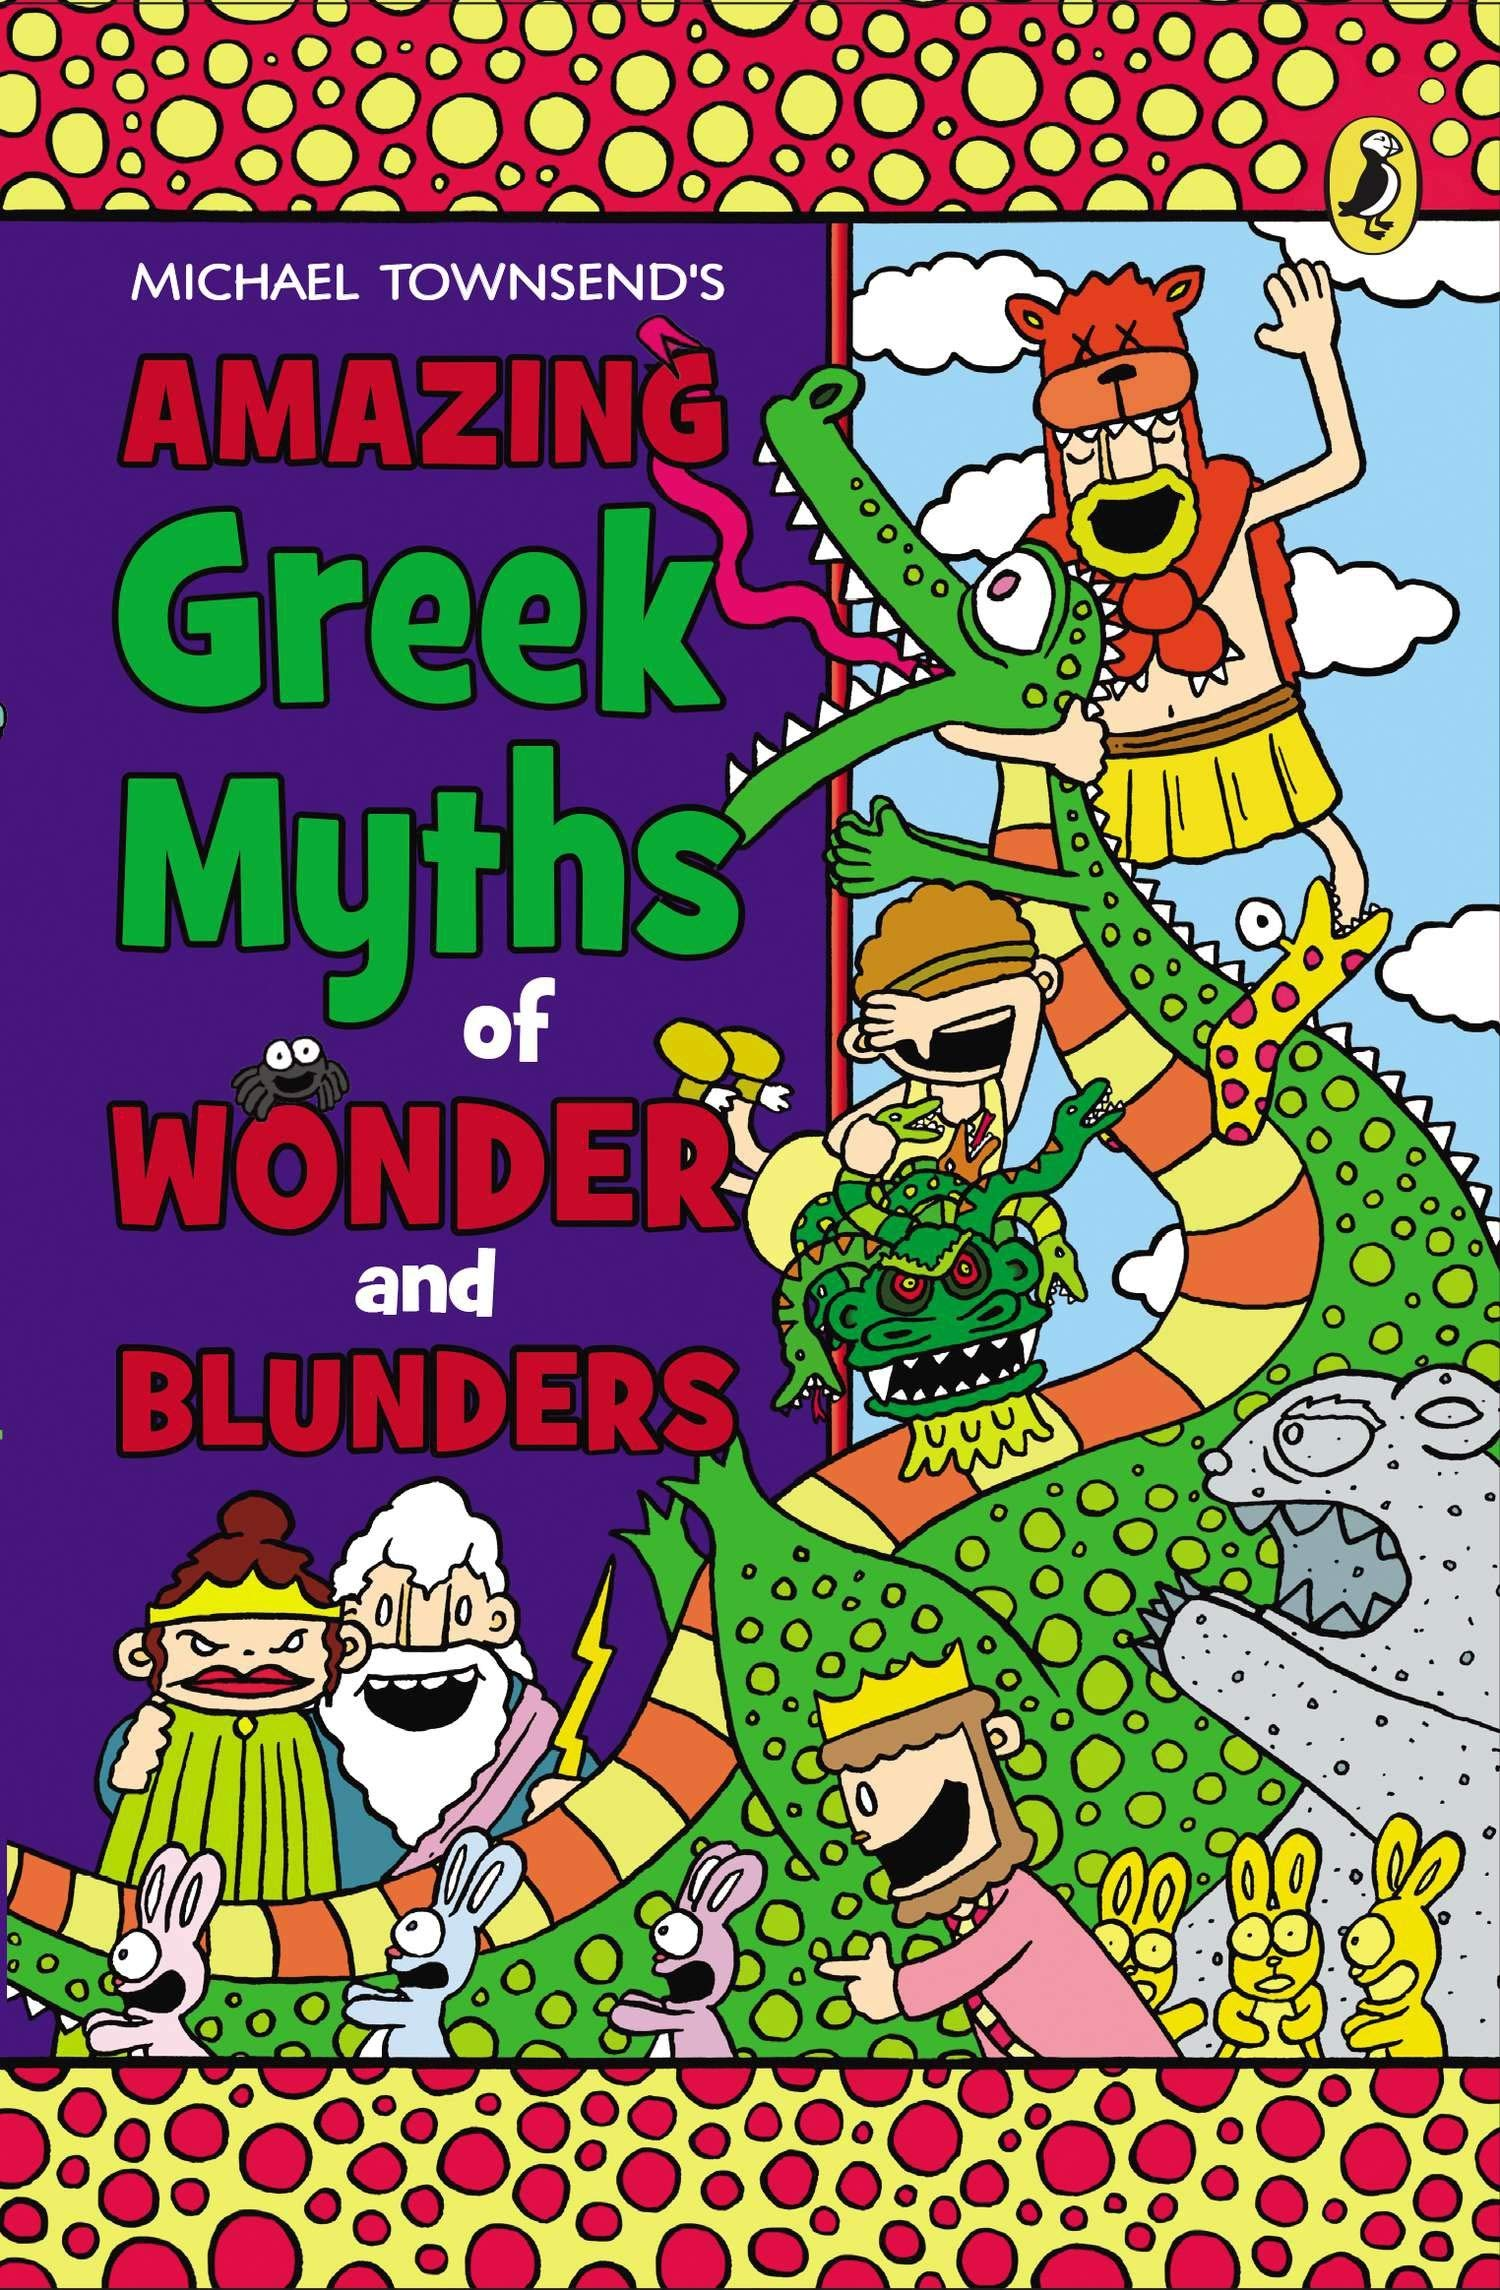 Amazing Greek Myths of Wonder and Blunders: Michael Townsend, Michael  Townsend: 9780147510693: Amazon.com: Books